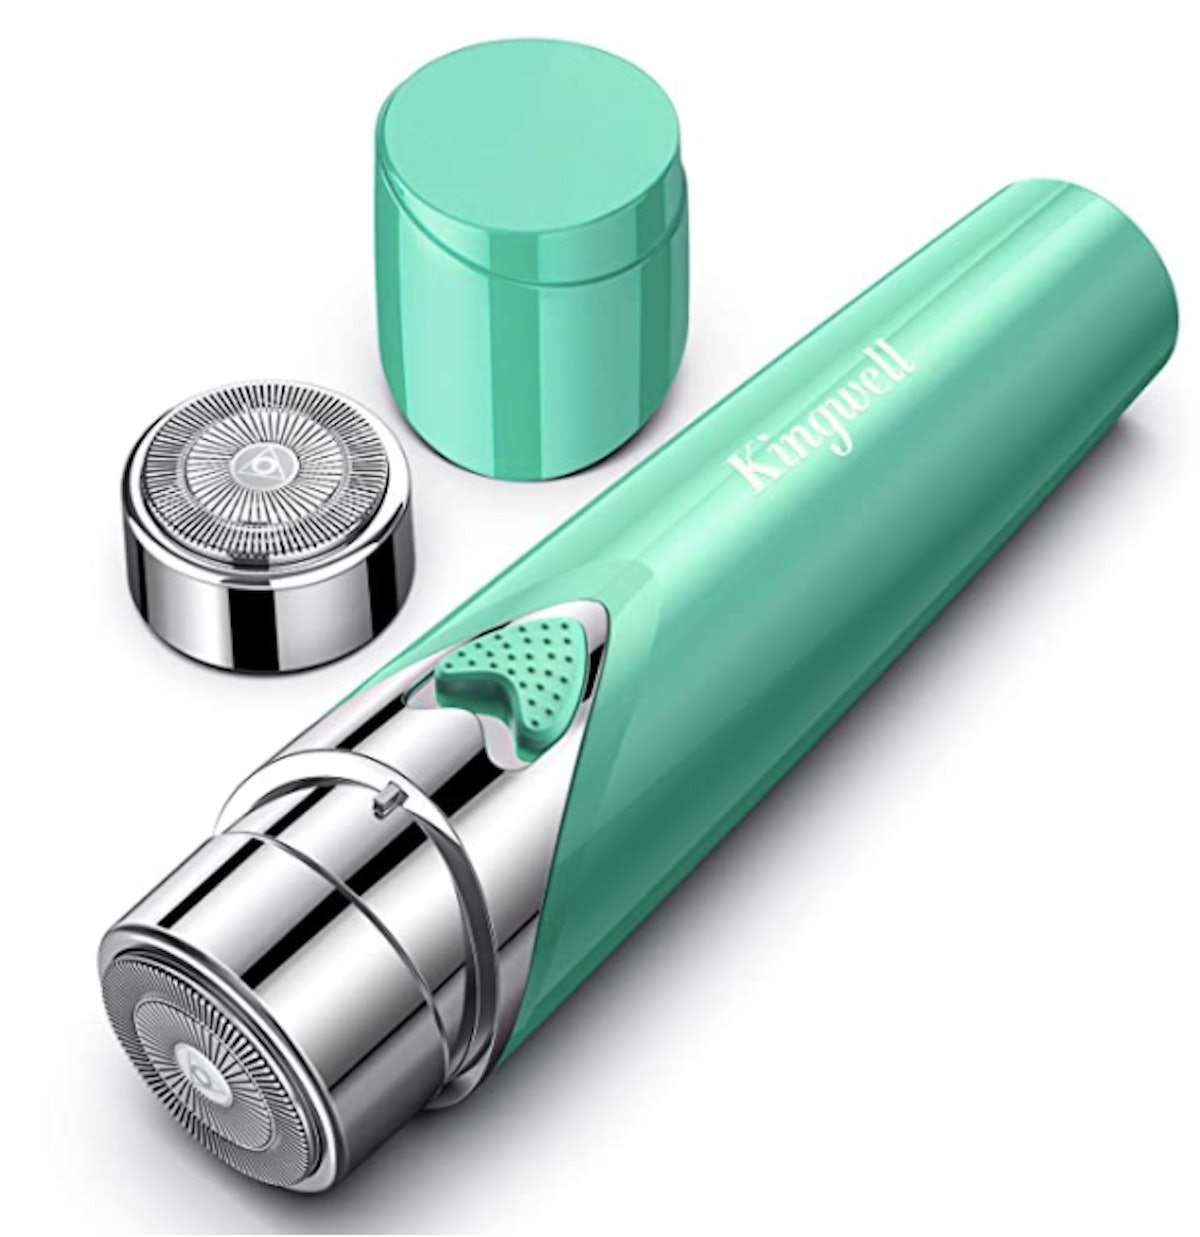 Kingwell Painless Hair Remover Shaver